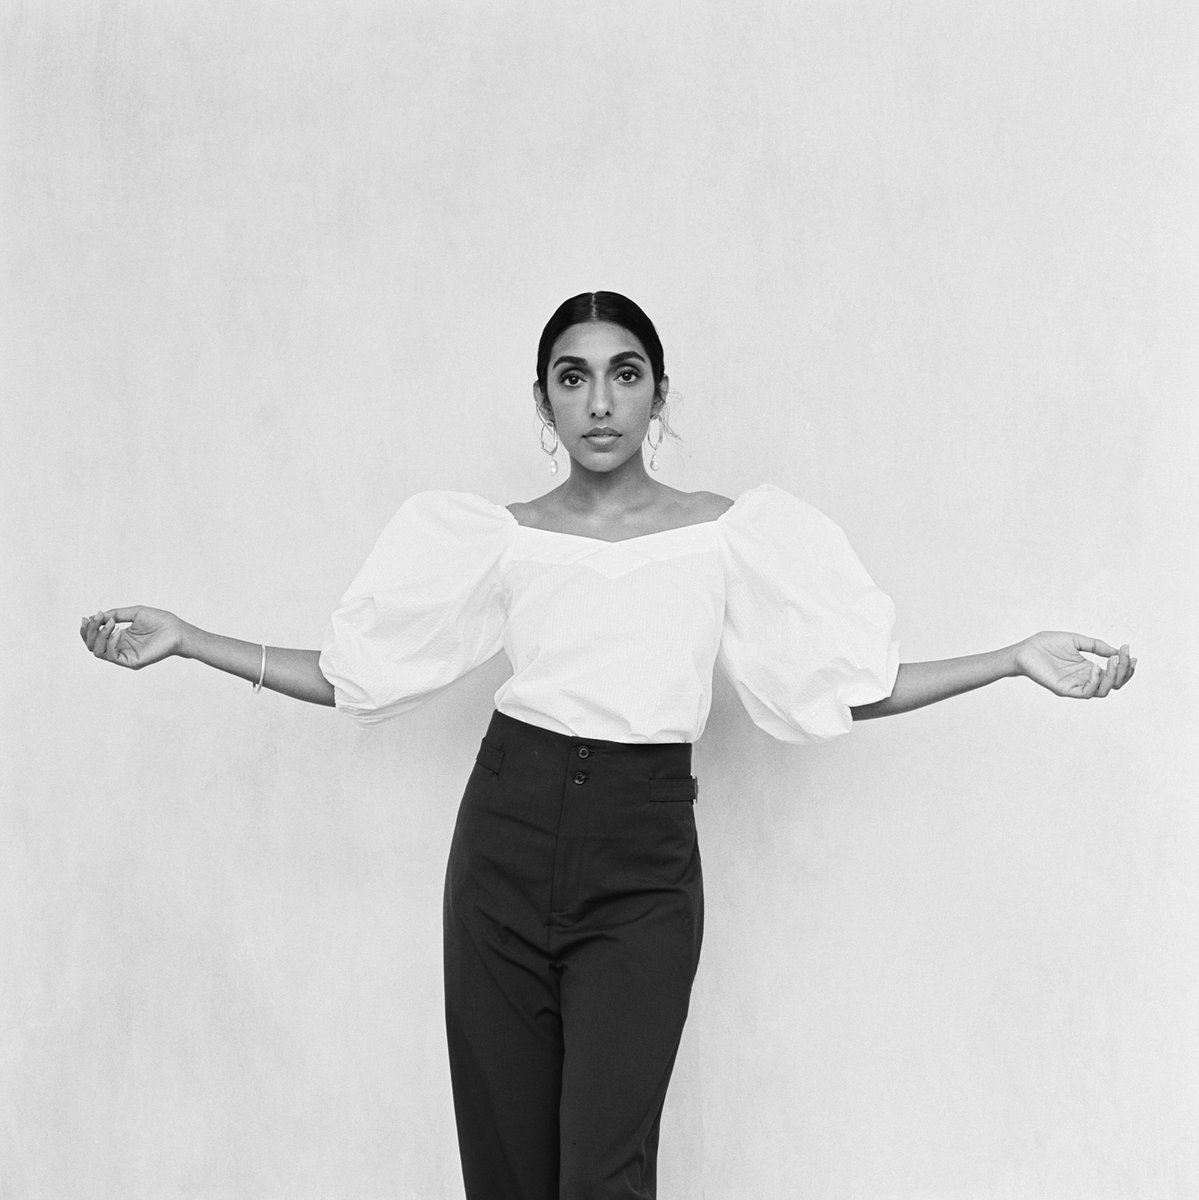 """""""I would extract these little gems and refine them until they started to make my stomach turn,"""" says Rupi Kaur. """"That's when I knew: this is what I want to put out.""""   A conversation with Rupi Kaur, from Cereal Volume 18, 2019.   https://t.co/87t5Oi02IP https://t.co/tLxxB7VuUv"""